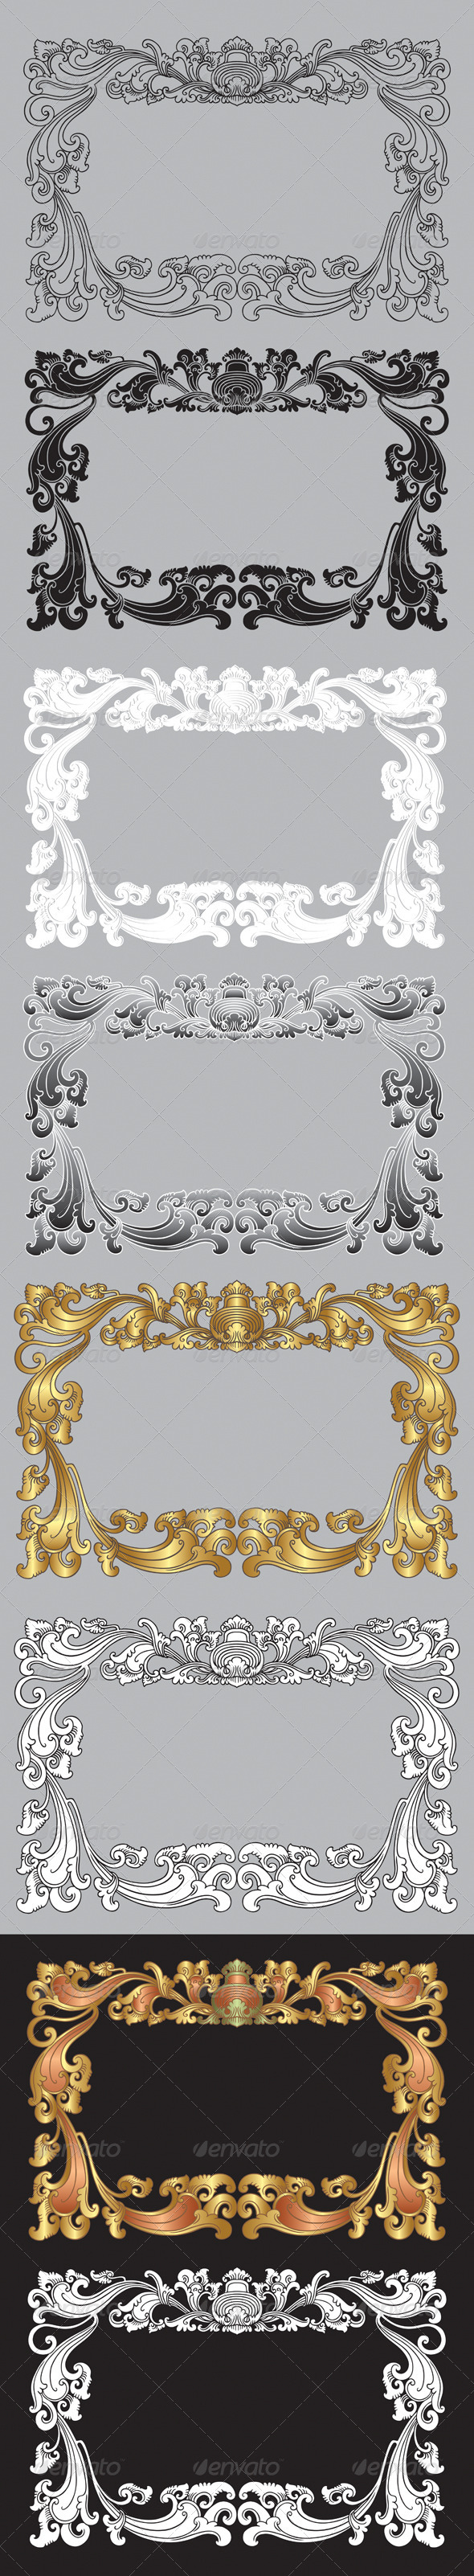 Balinese Ornament Frame 2 - Flourishes / Swirls Decorative